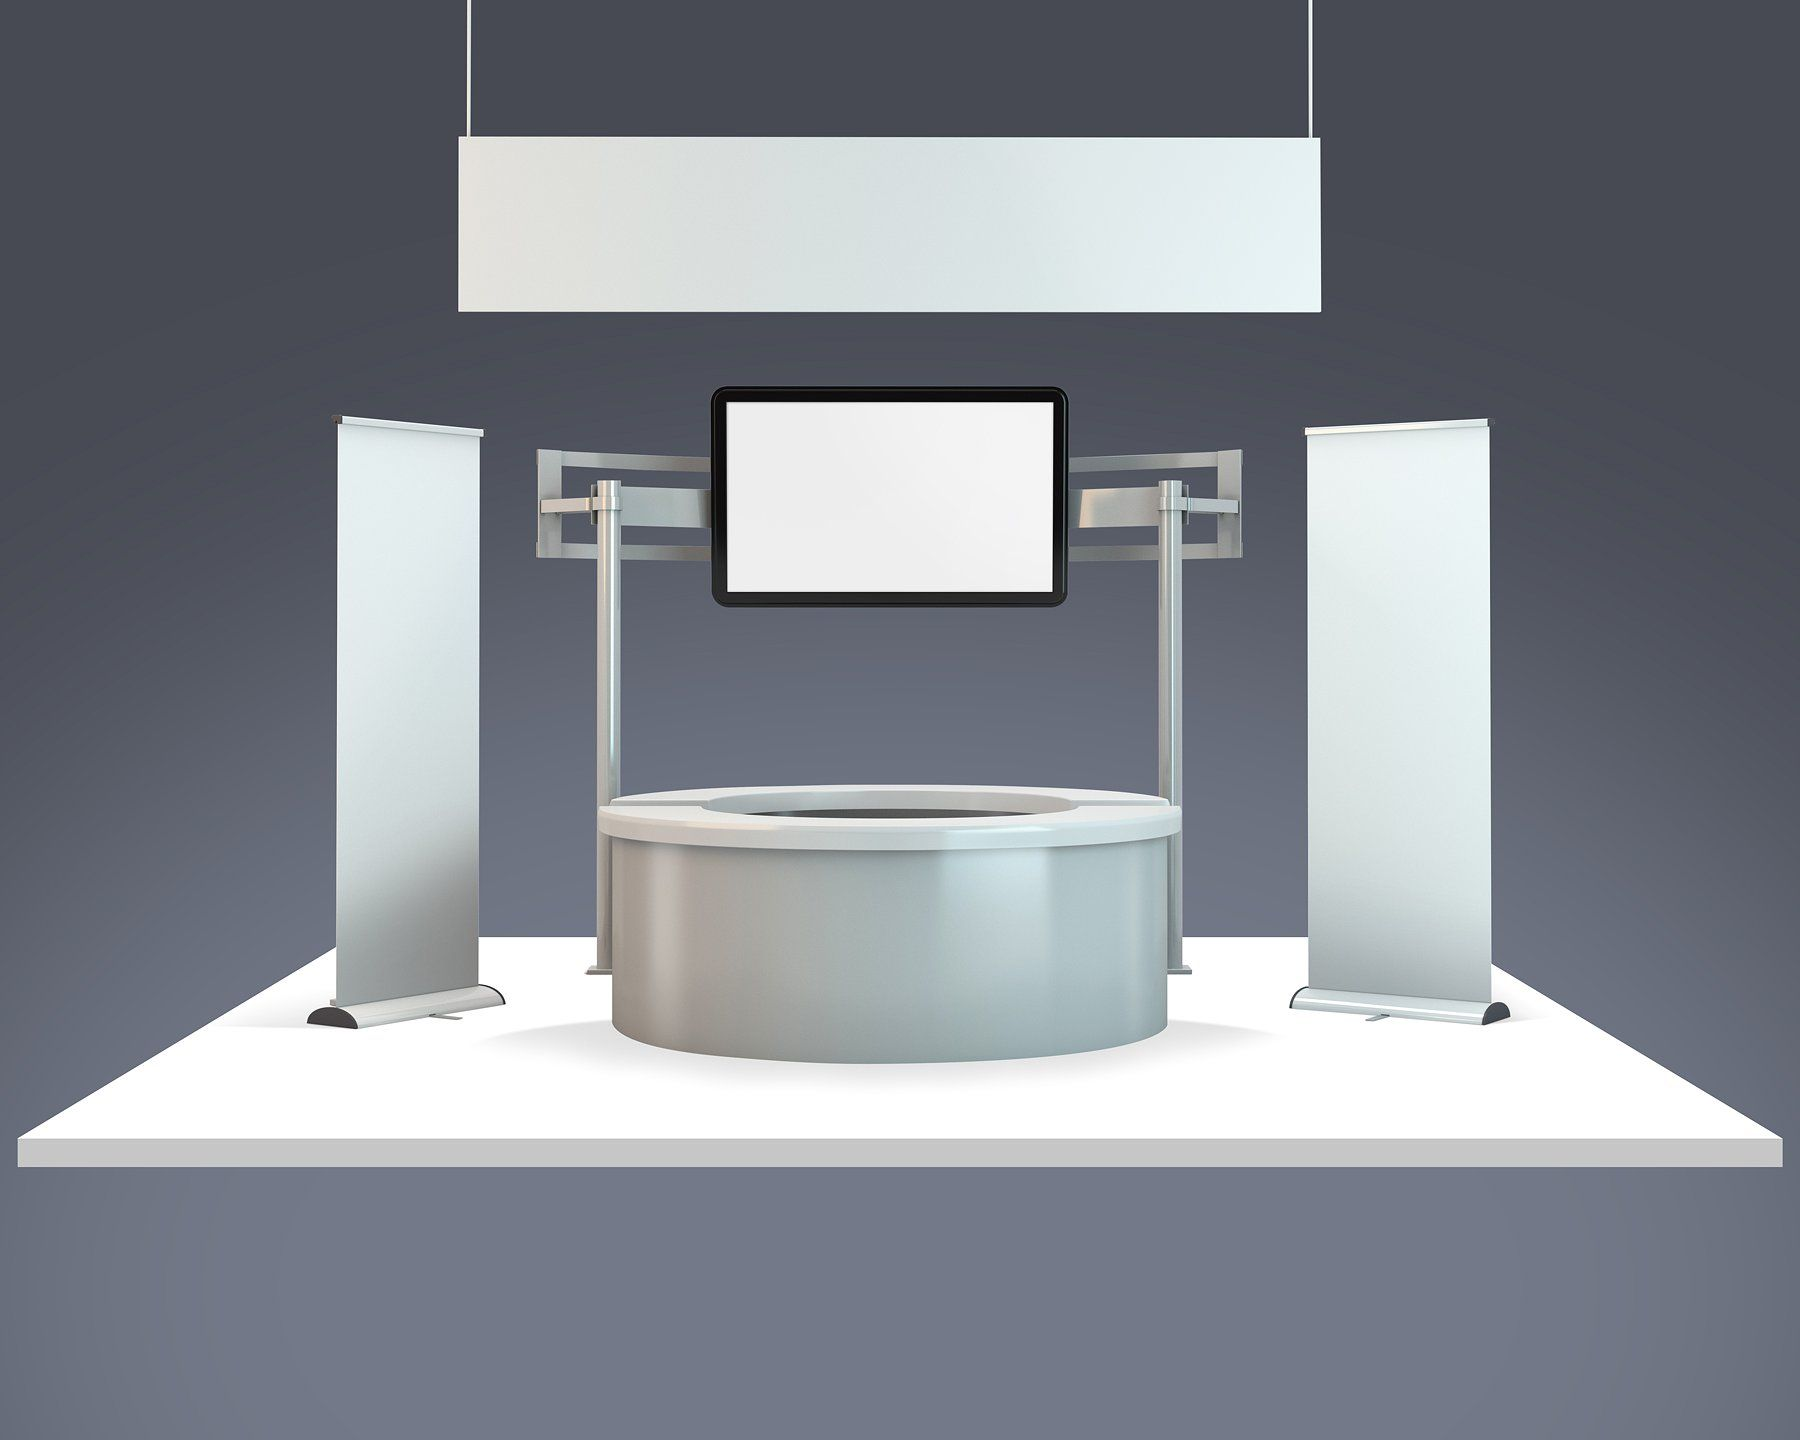 Exhibition Booth Mockup : Trade show exhibition booth mockup by vecto designs on